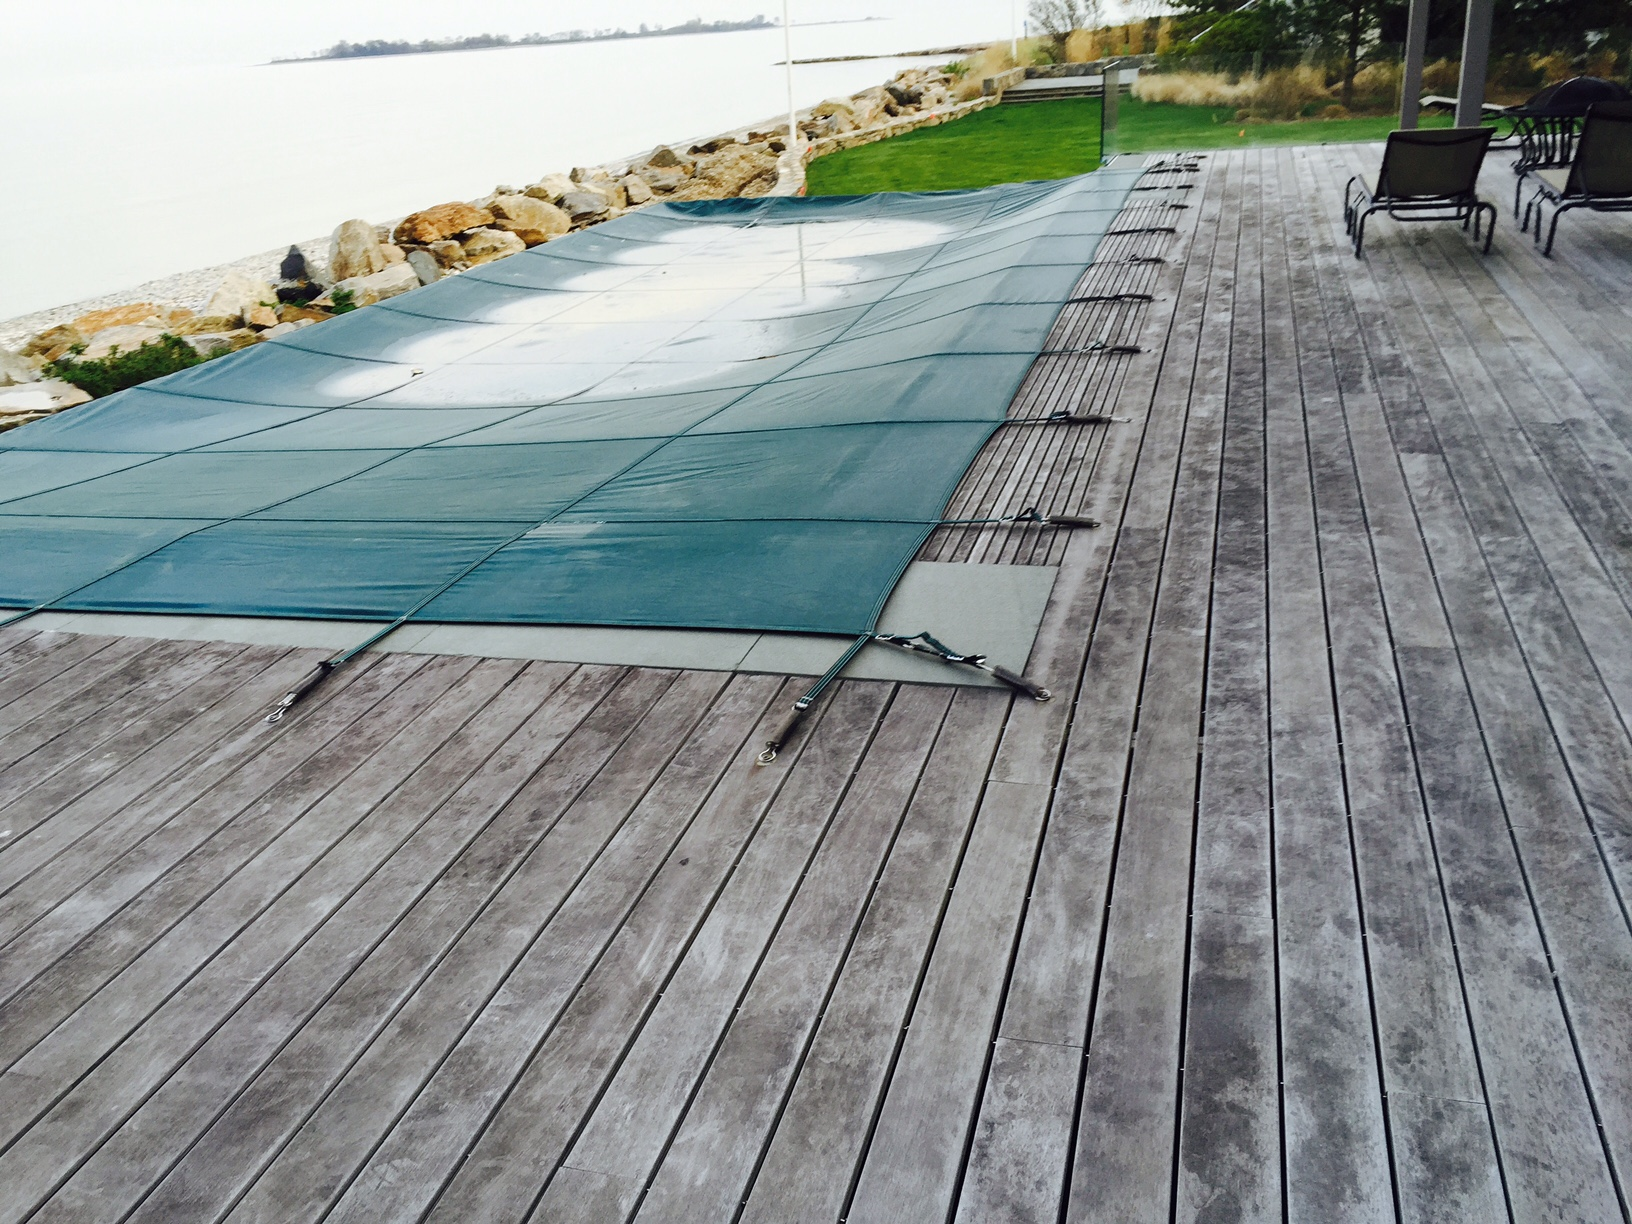 Weathered ipe deck by the ocean.